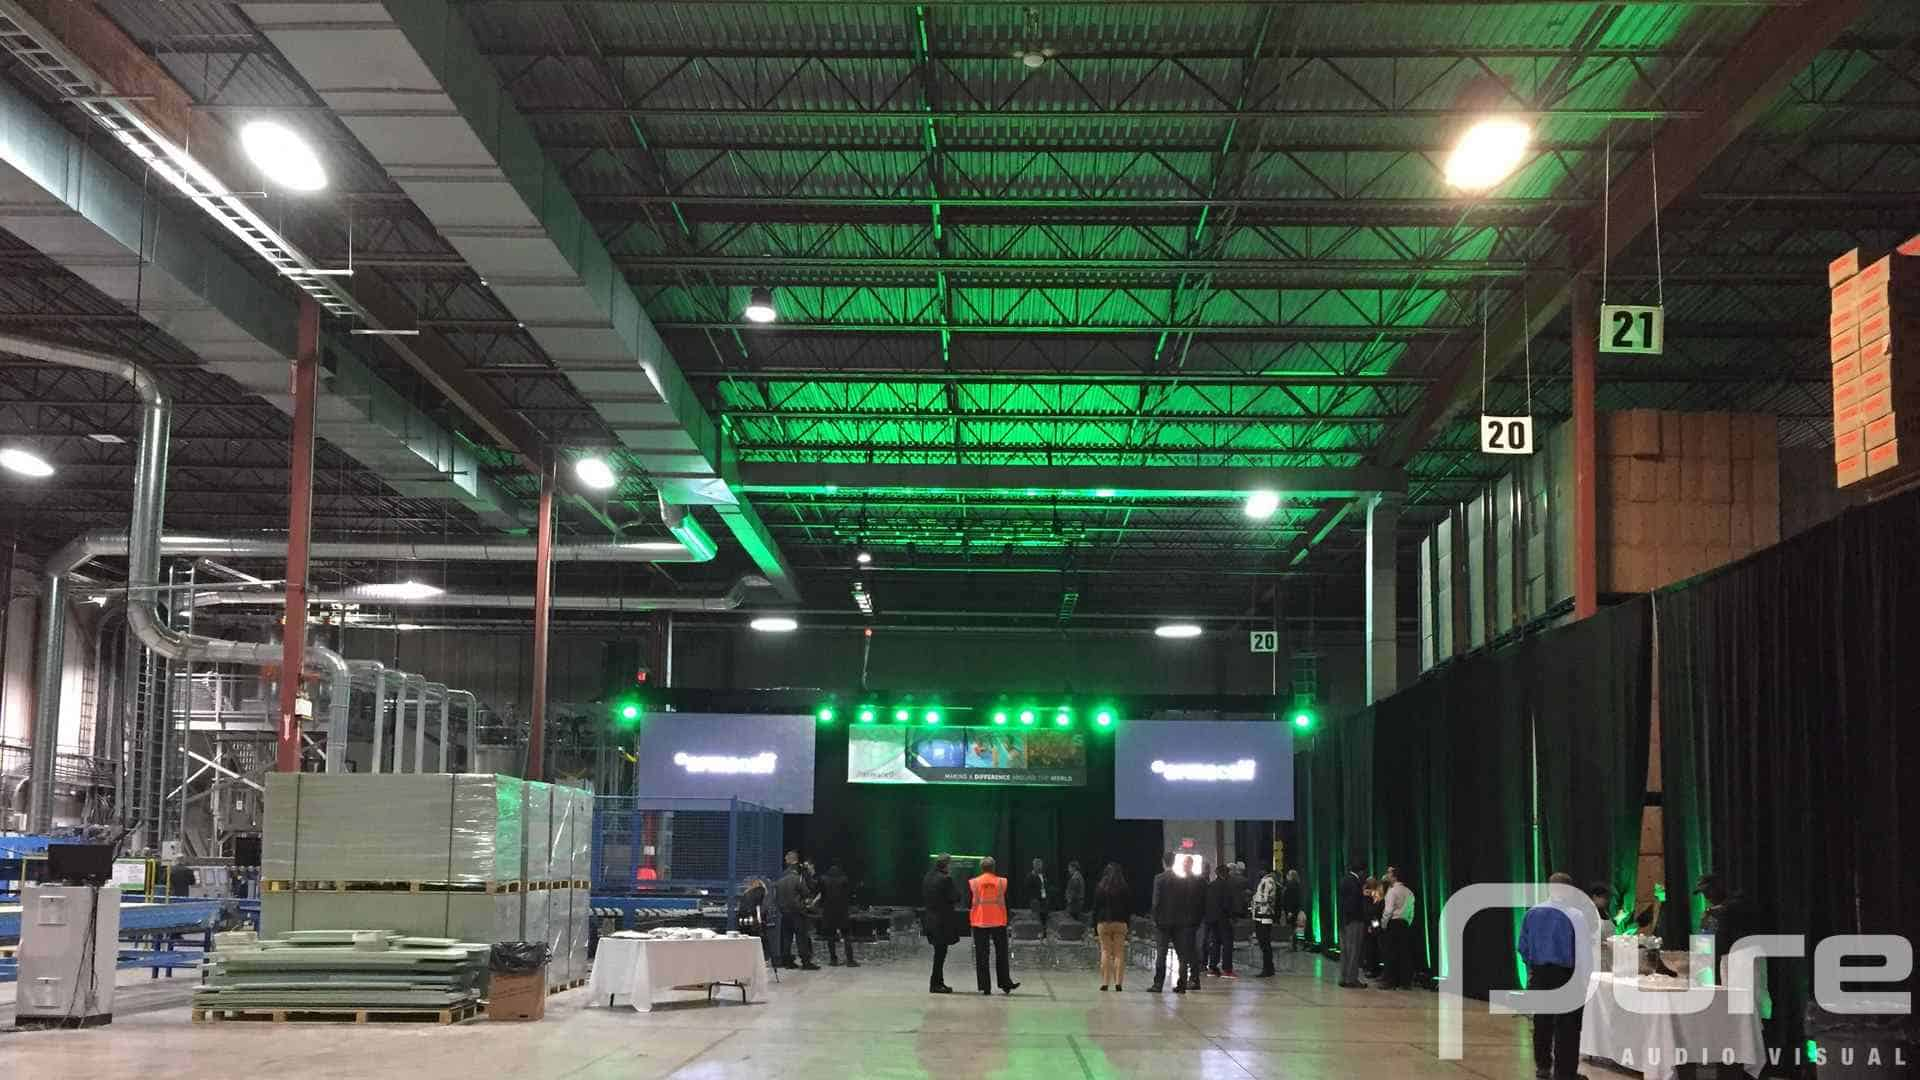 A presentation with a small stage, podium, 2 LED video walls, truss, and auras in a warehouse space